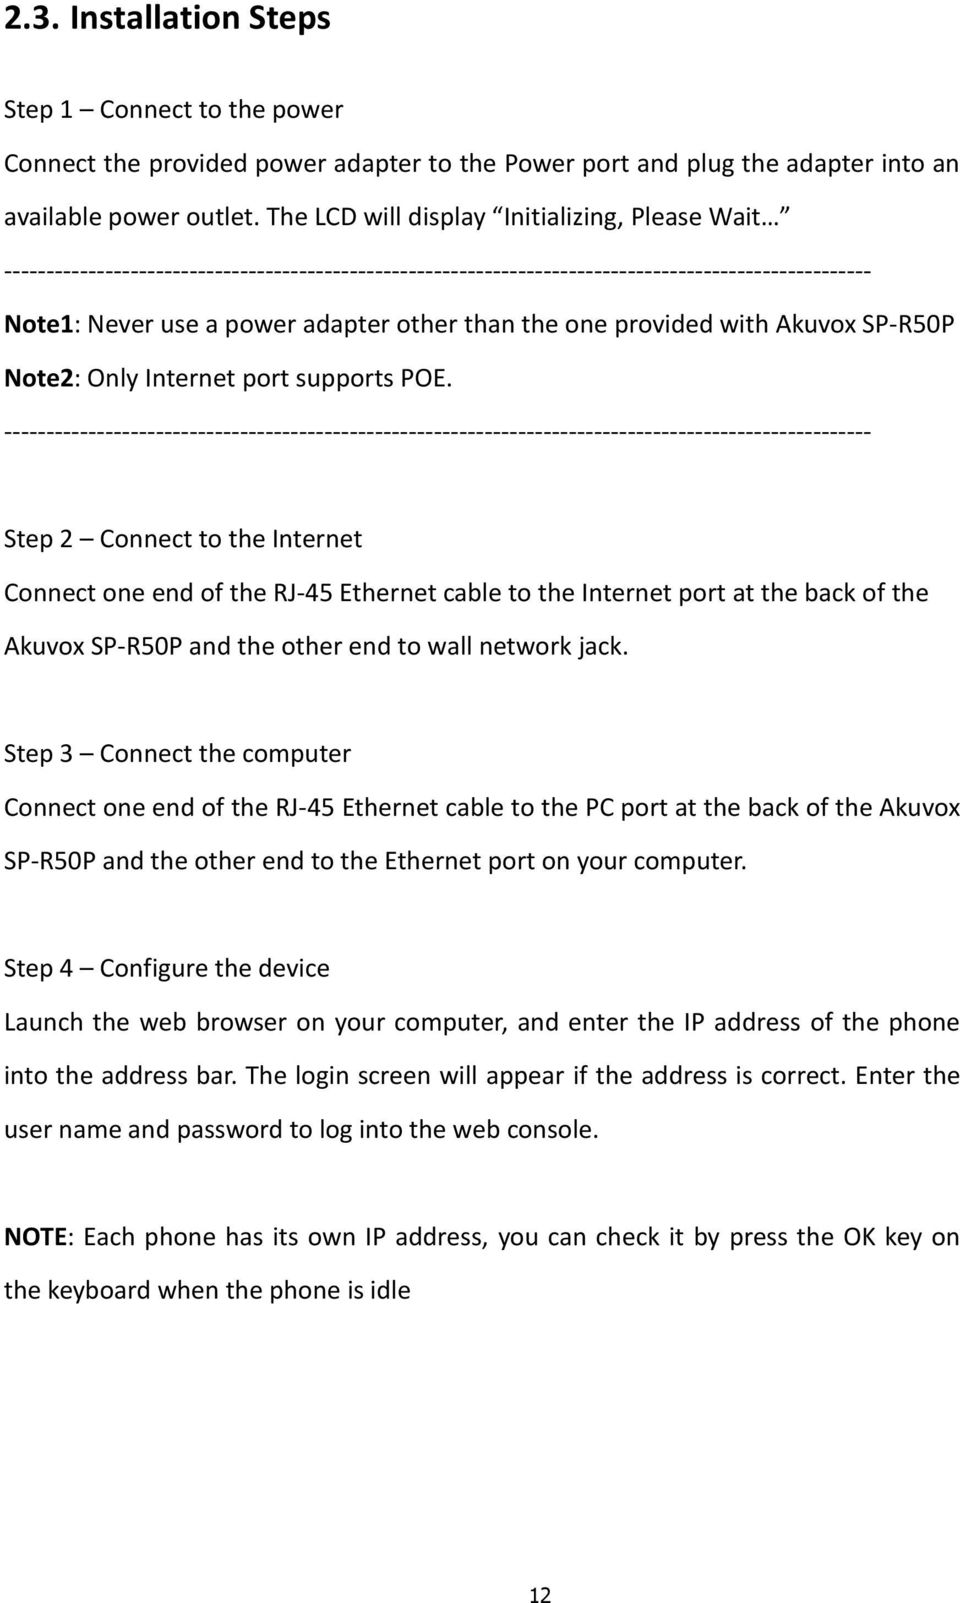 Sp R50p Ip Phone User Manual 12 05 Pdf Ethernet Wall Jack Wiring Poe One Provided With Akuvox Note2 Only Internet Port Supports